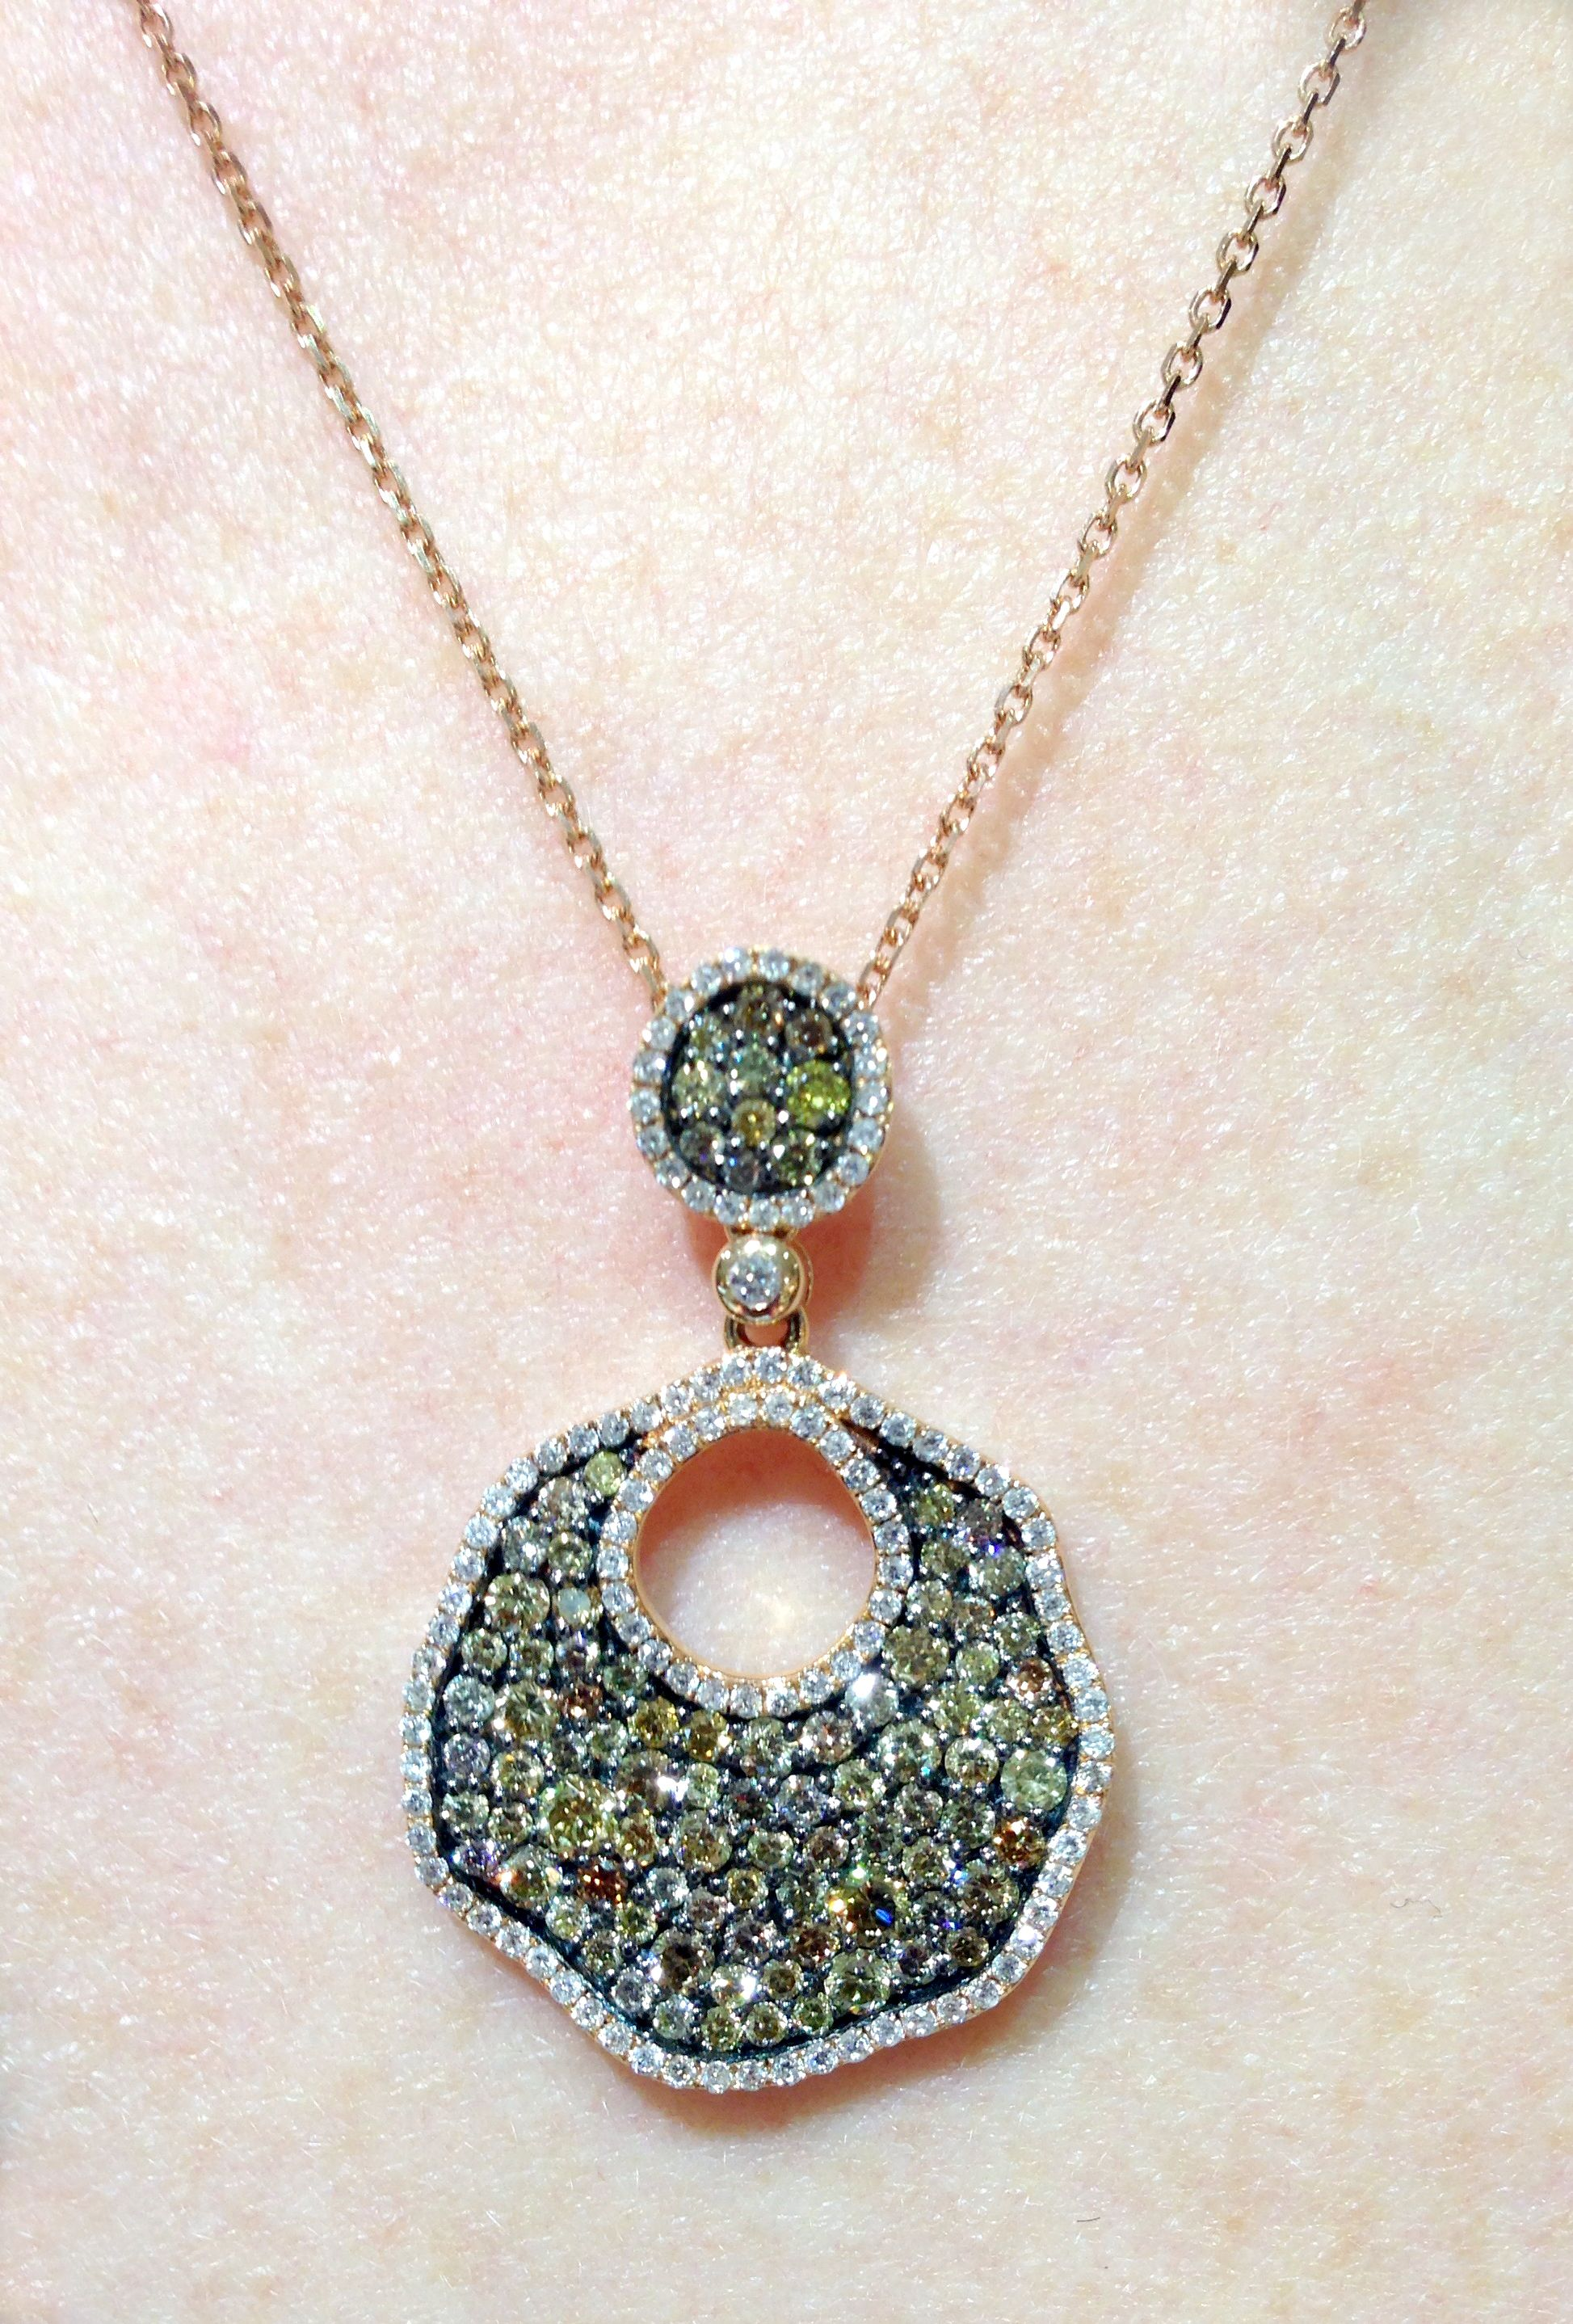 Diamond fashion pendant in 14k rose gold with 2.0 cts of colored and white diamonds. Call for pricing.